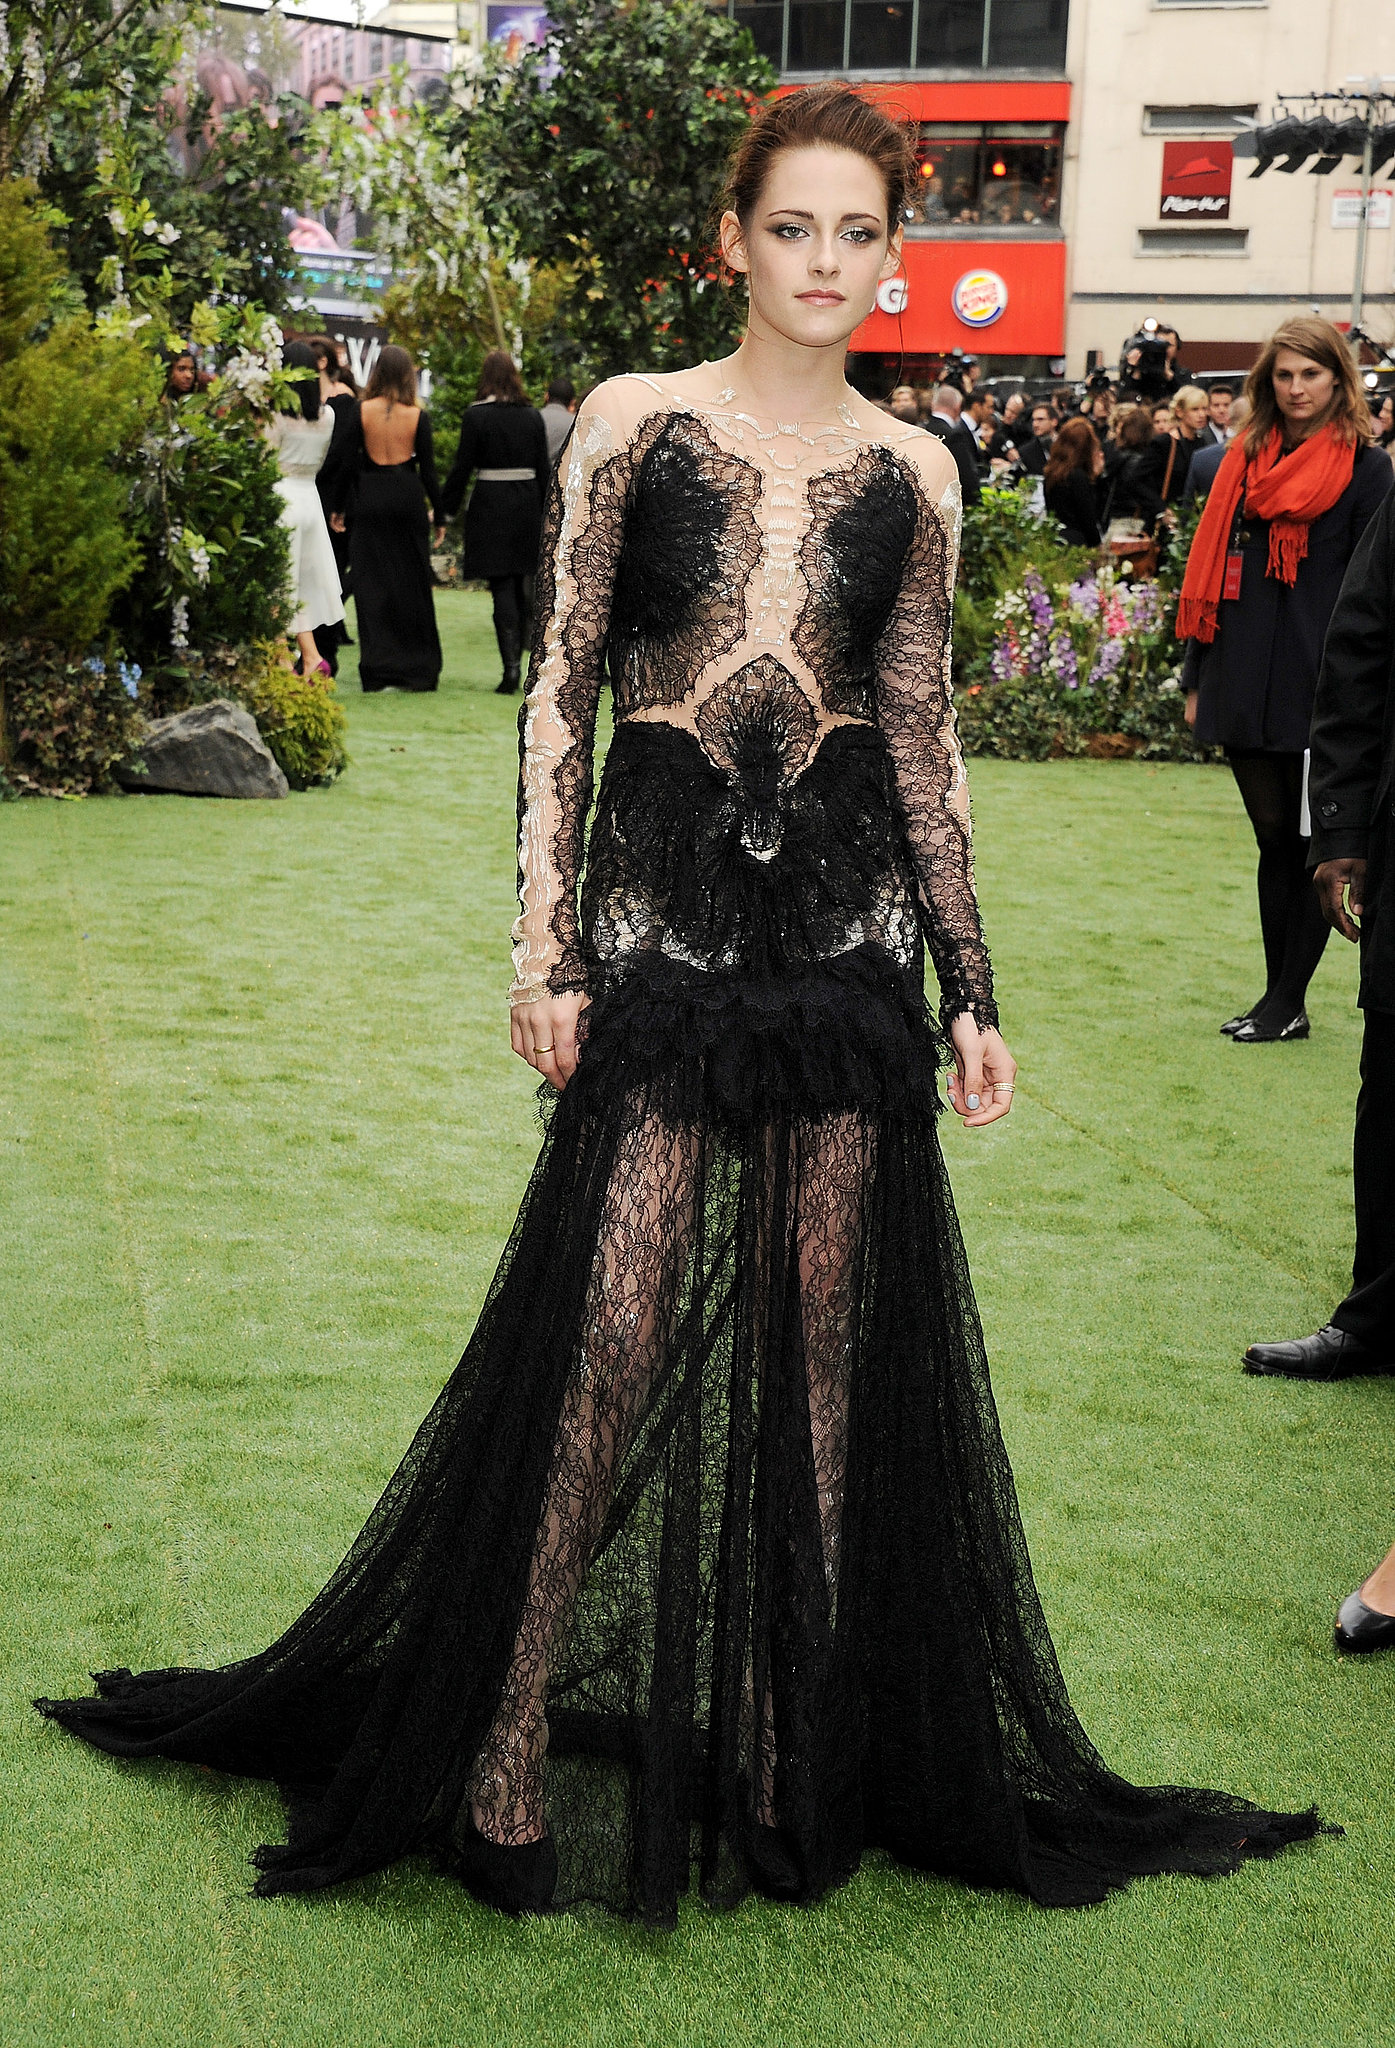 Stewart made a serious statement for the May 2012 premiere of Snow White and the Huntsman in London — she wore a gothic-inspired black lace Marchesa gown with a deceptively sheer bodice.